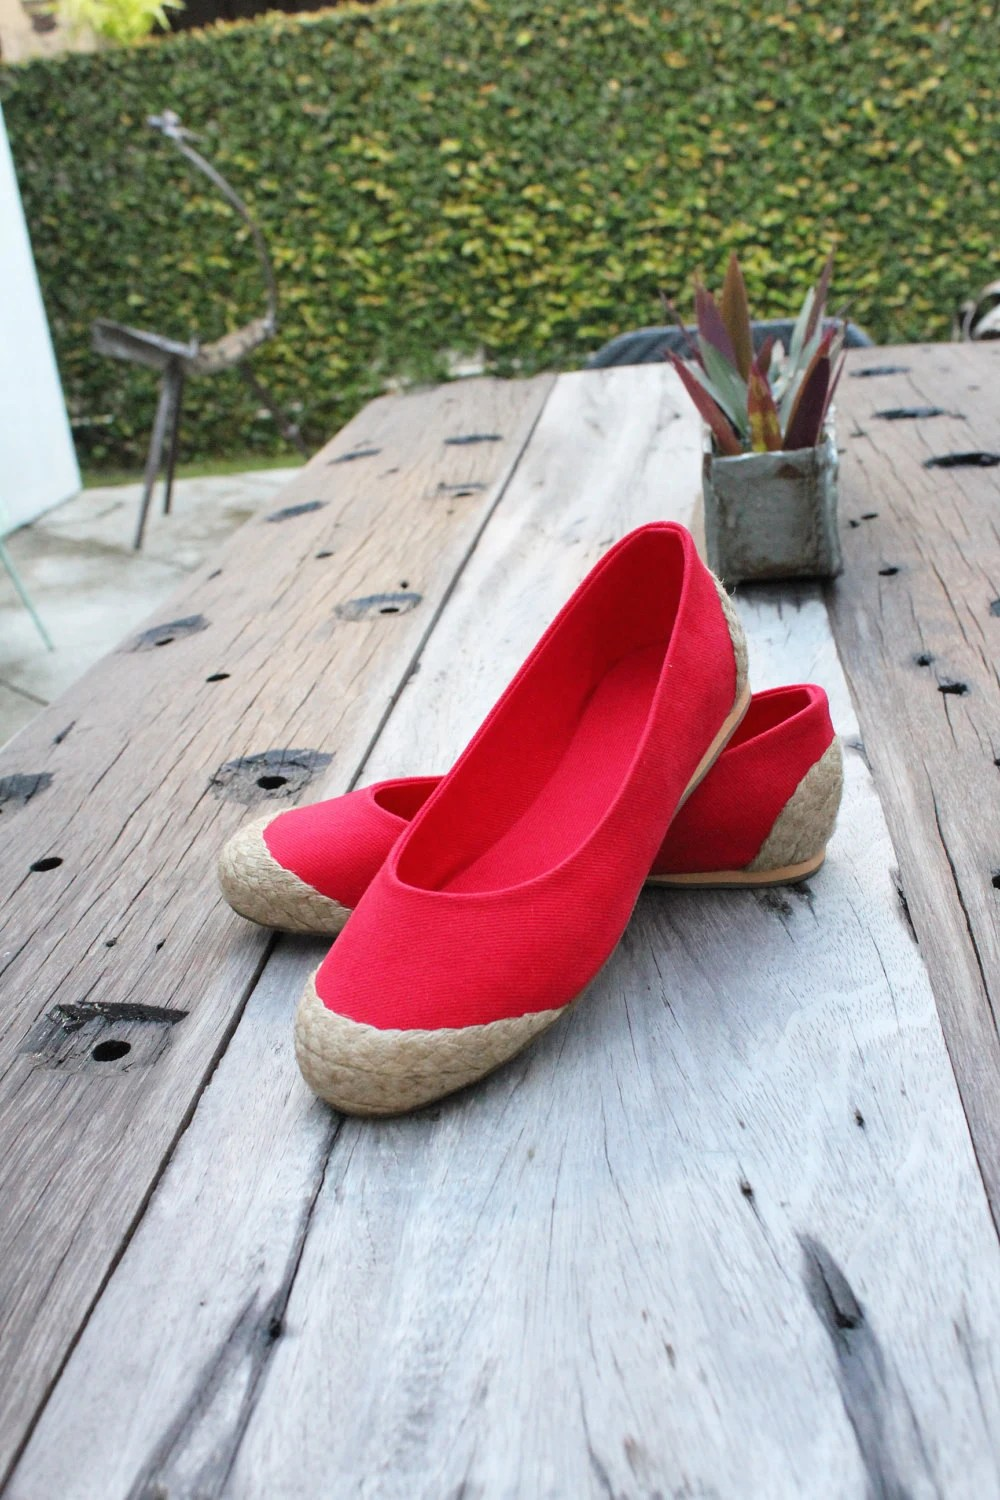 Red Ballet Flat Espadrilles - Available in 6, 7, 8, 9 US Sizing / 36, 37.5, 38.5, 40 EUR Sizing